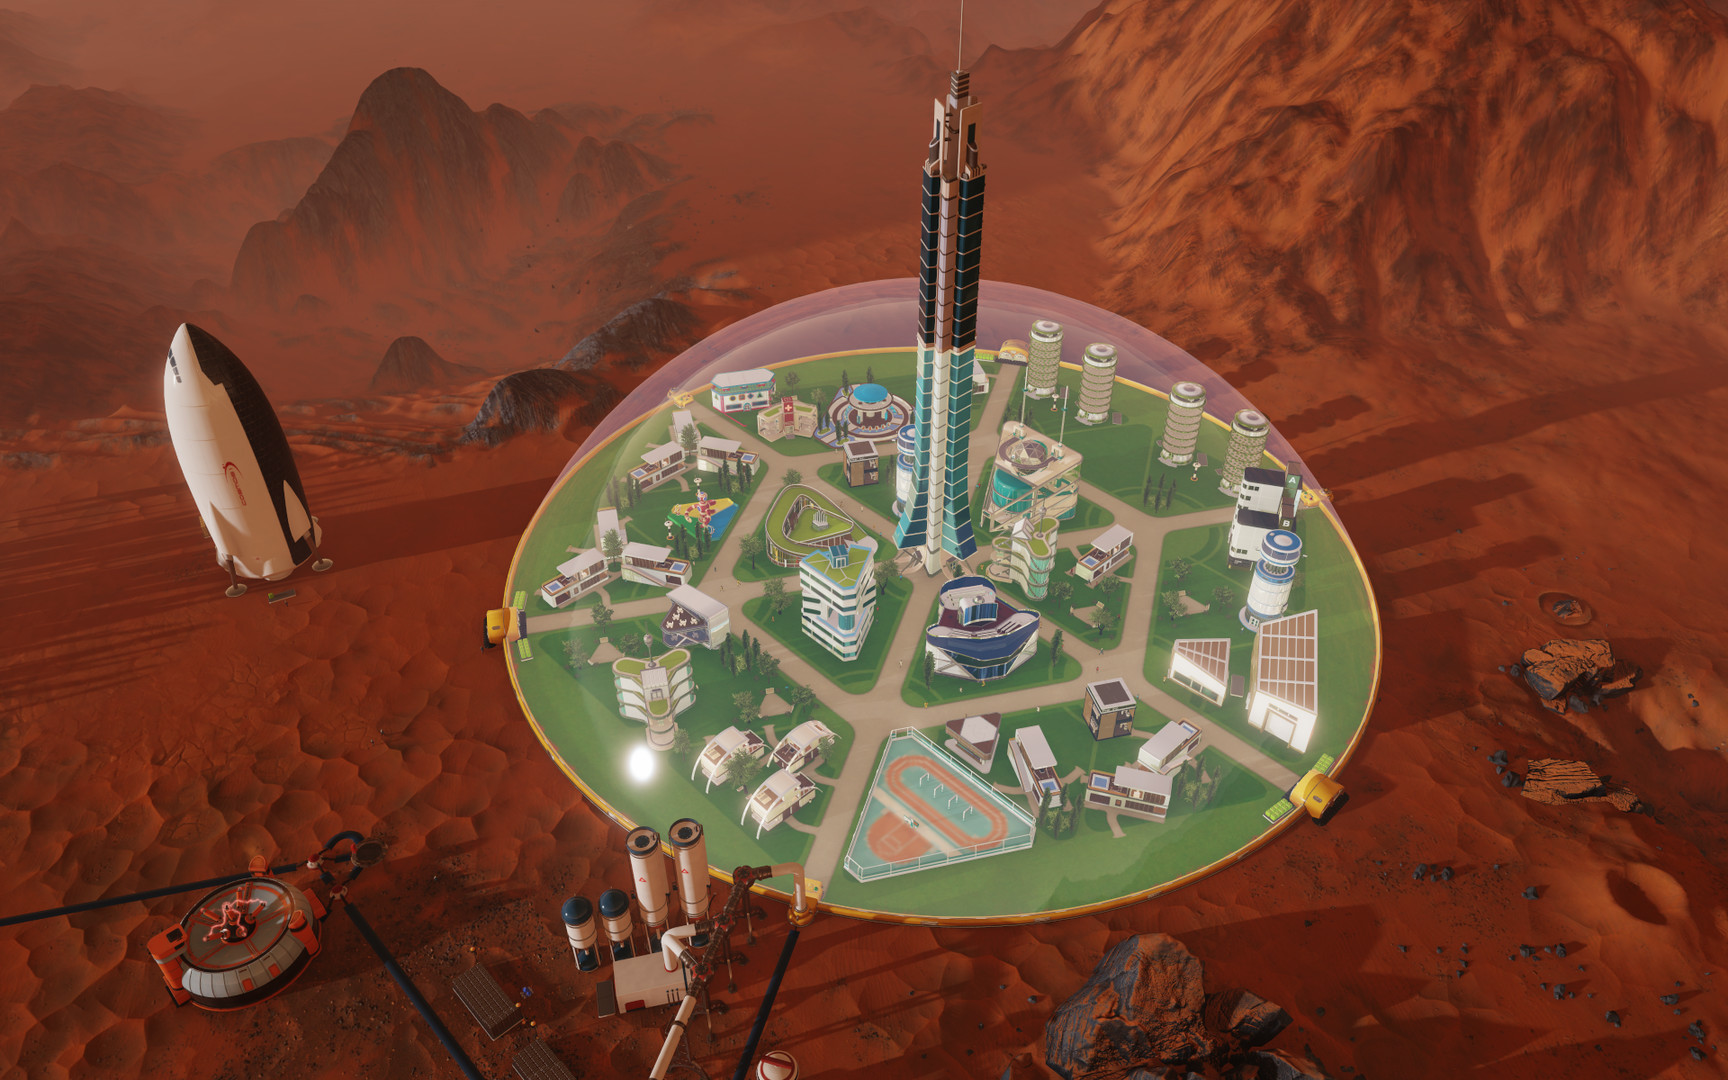 Surviving Mars - This one is froom their Press Kit, I haven't gotten this far yet